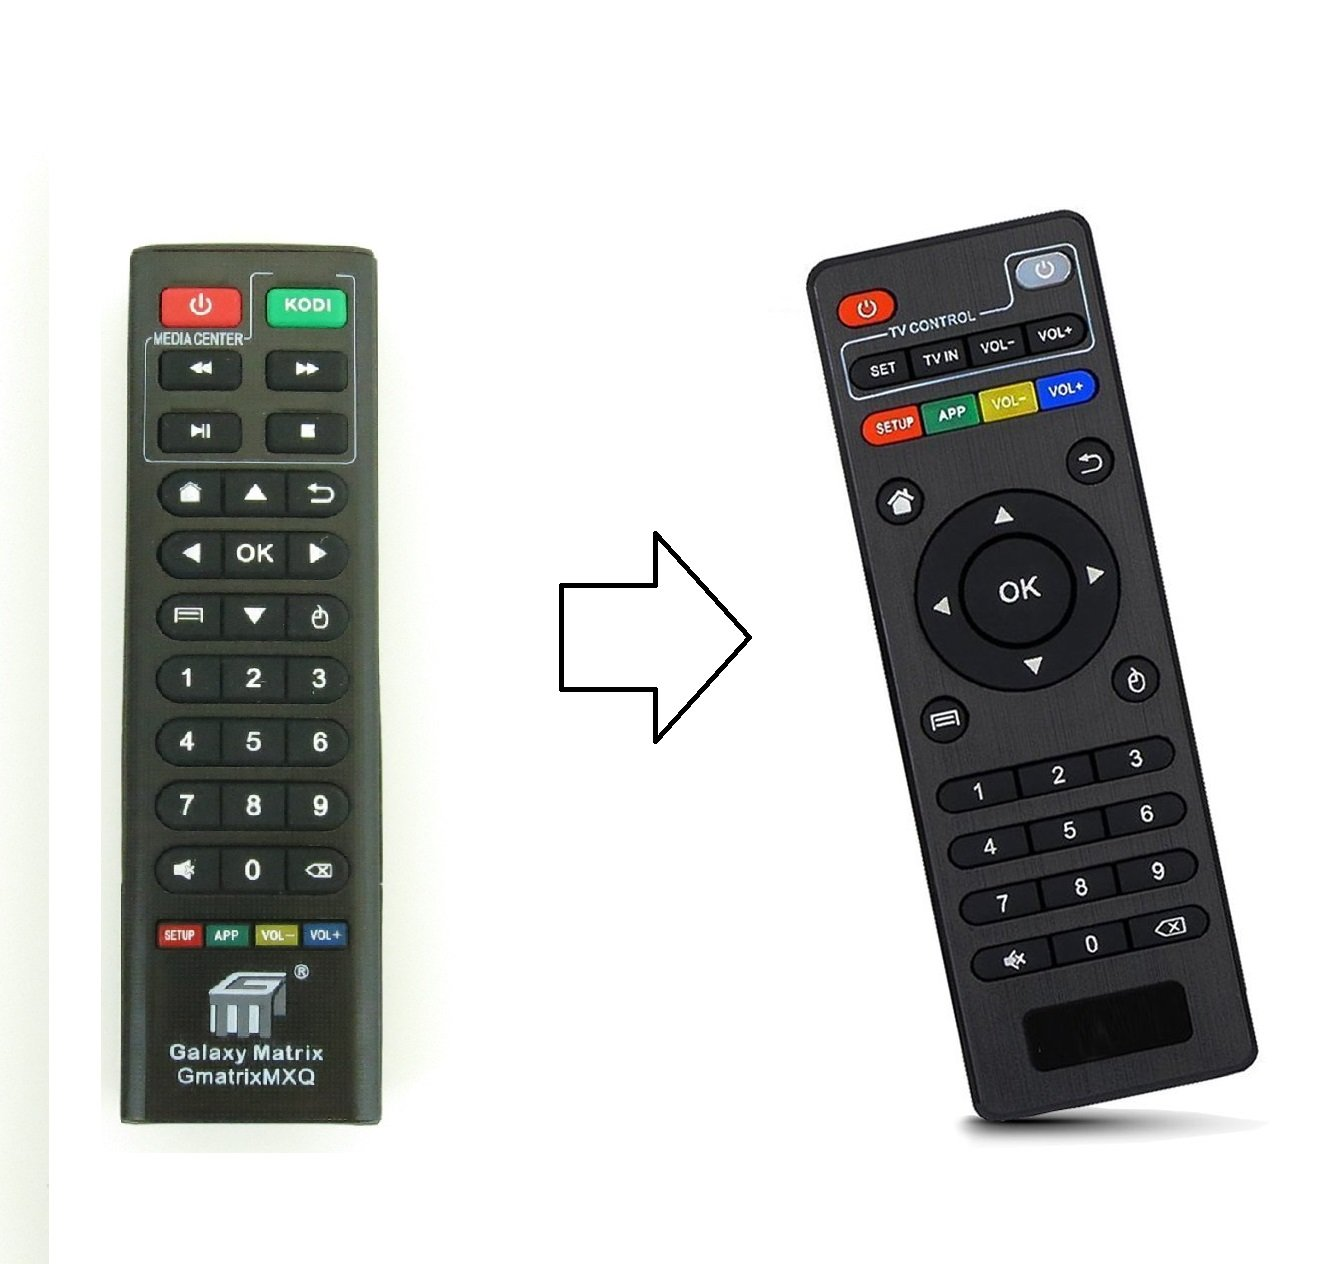 Amazonshop247 Replacement Remote Control, TV Controller for MXQ (Amlogic S805 & S905 ), MXQ Pro 4K, T95M, T95N, T95X Android TV Box (Please DO NOT Use on Other Model TV Boxes)